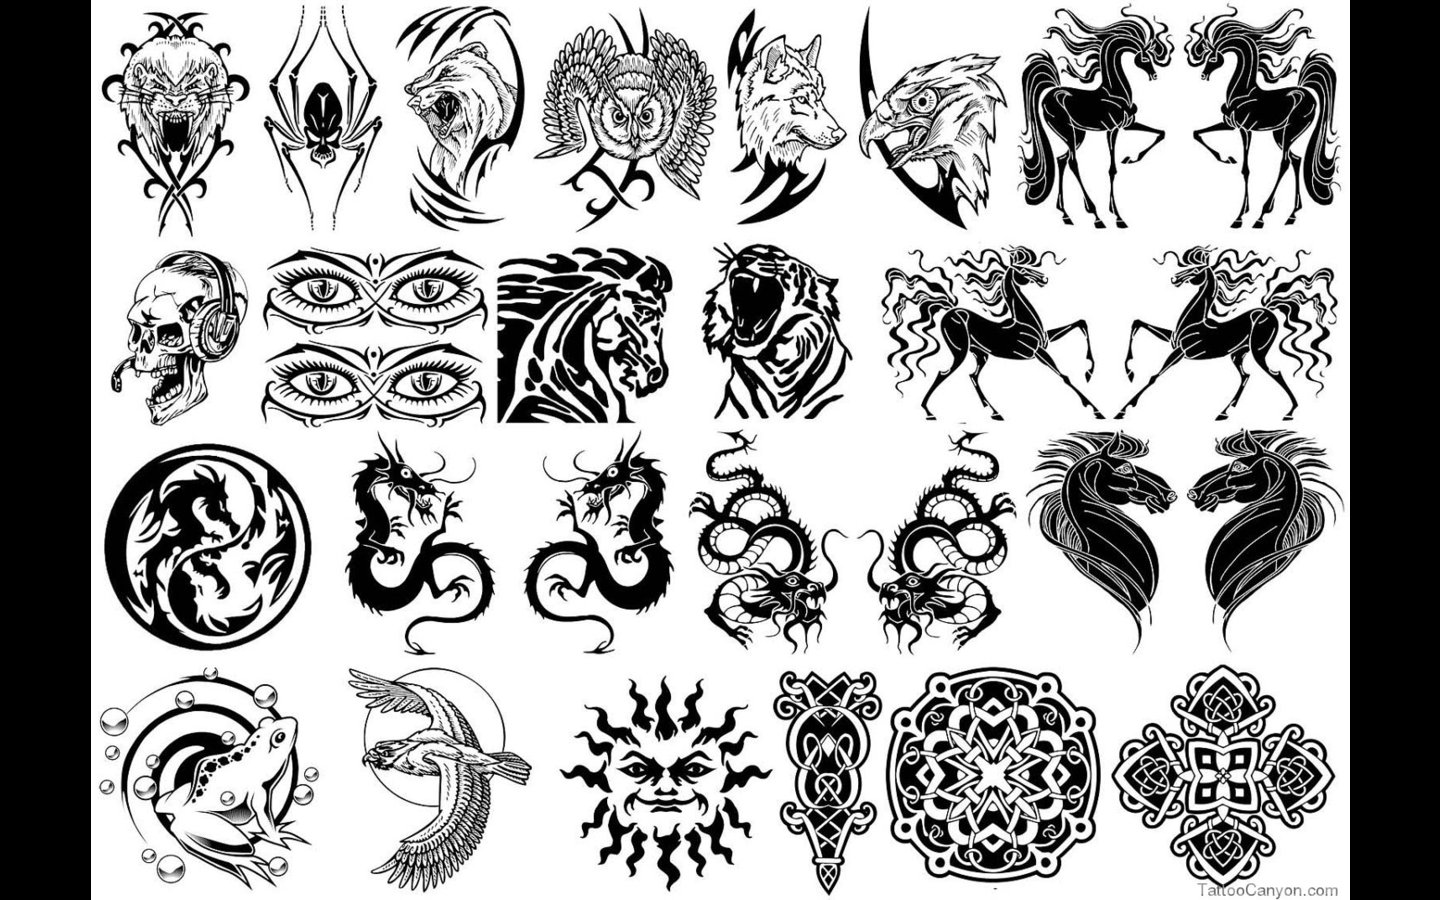 Kanji chinese symbols tattoos collection for men in 2017 real kanji chinese symbols tattoos collection for men in 2017 real photo pictures images and sketches tattoo collections biocorpaavc Images